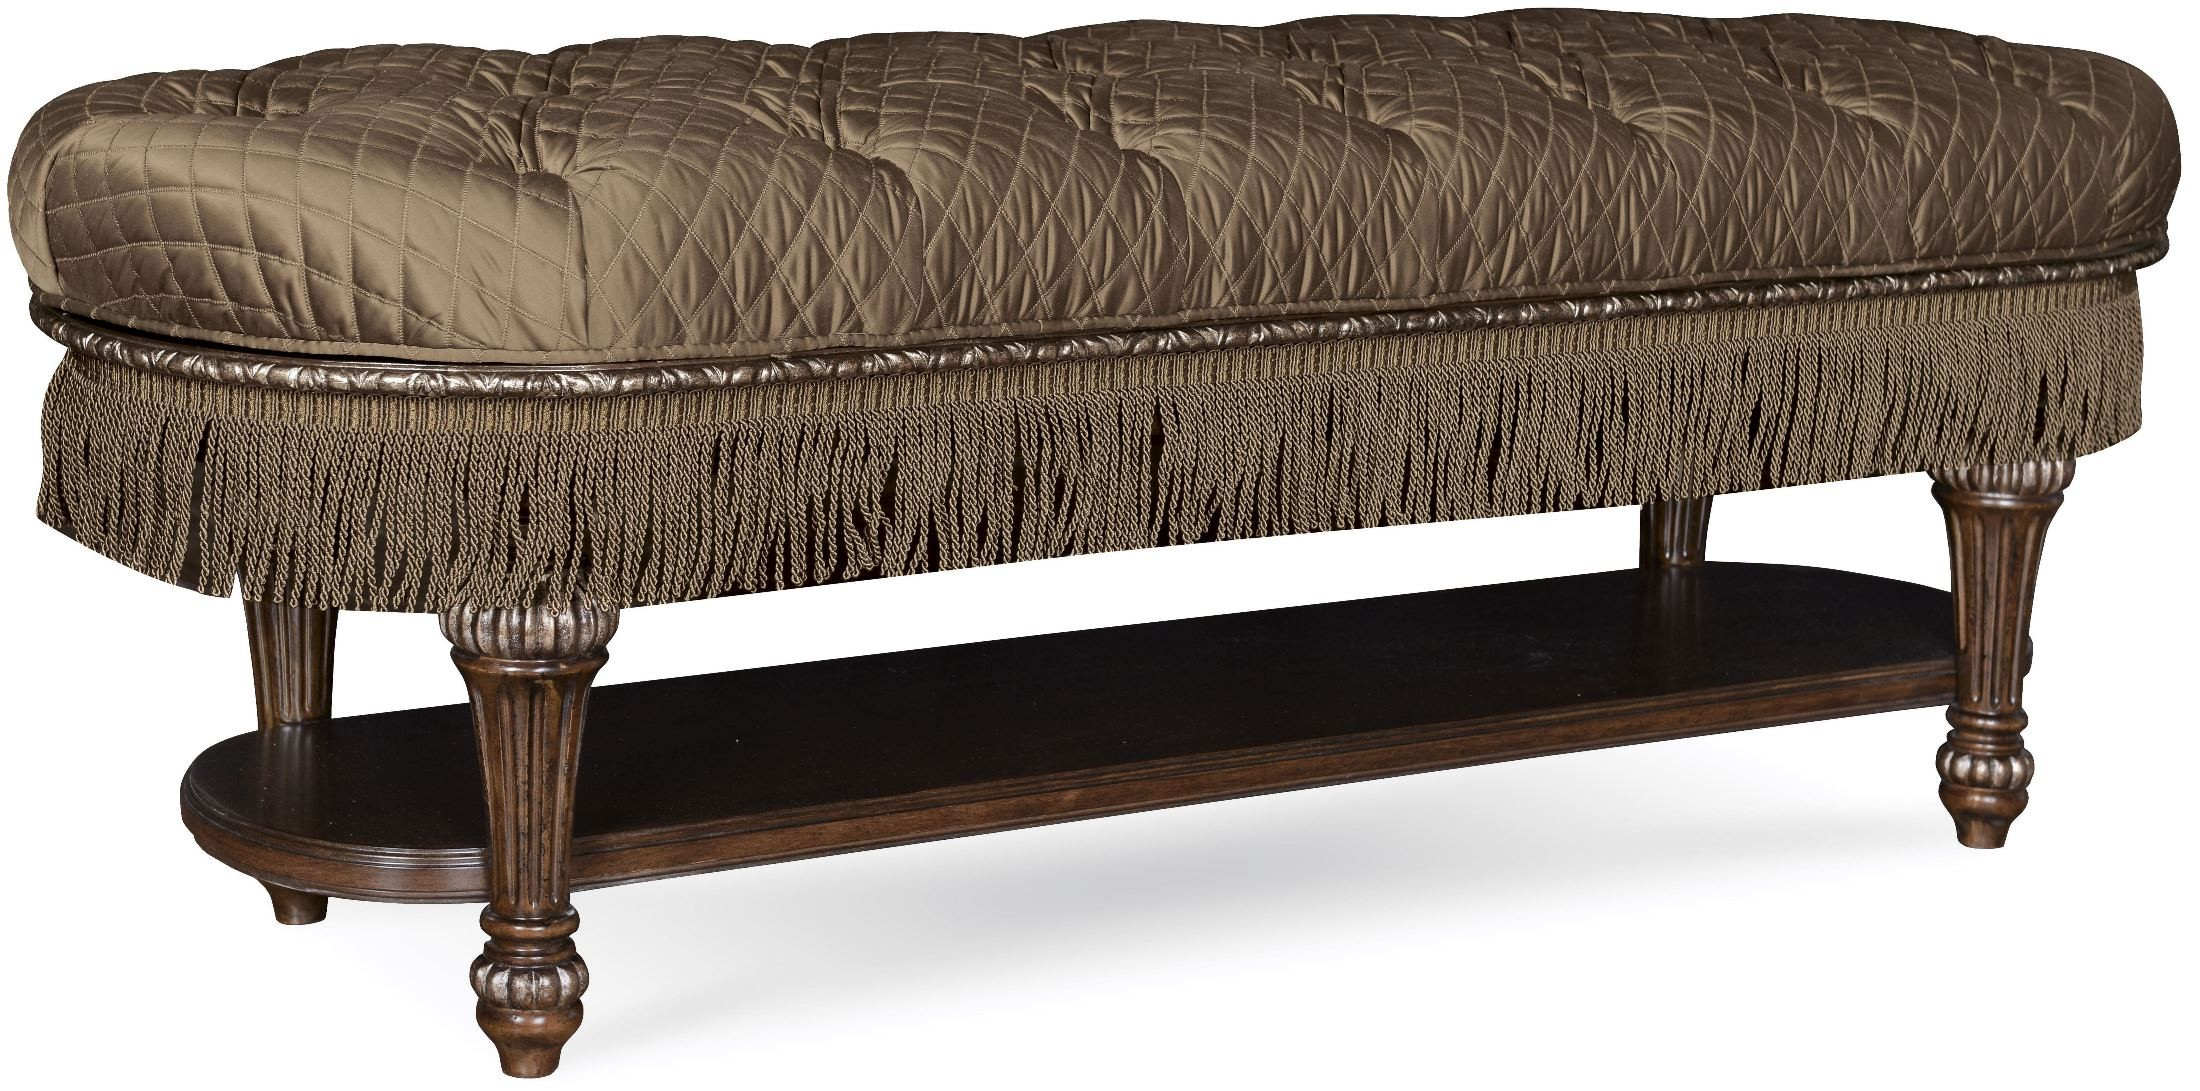 Bench By Bed: Gables Bed Bench From ART (245149-1707)